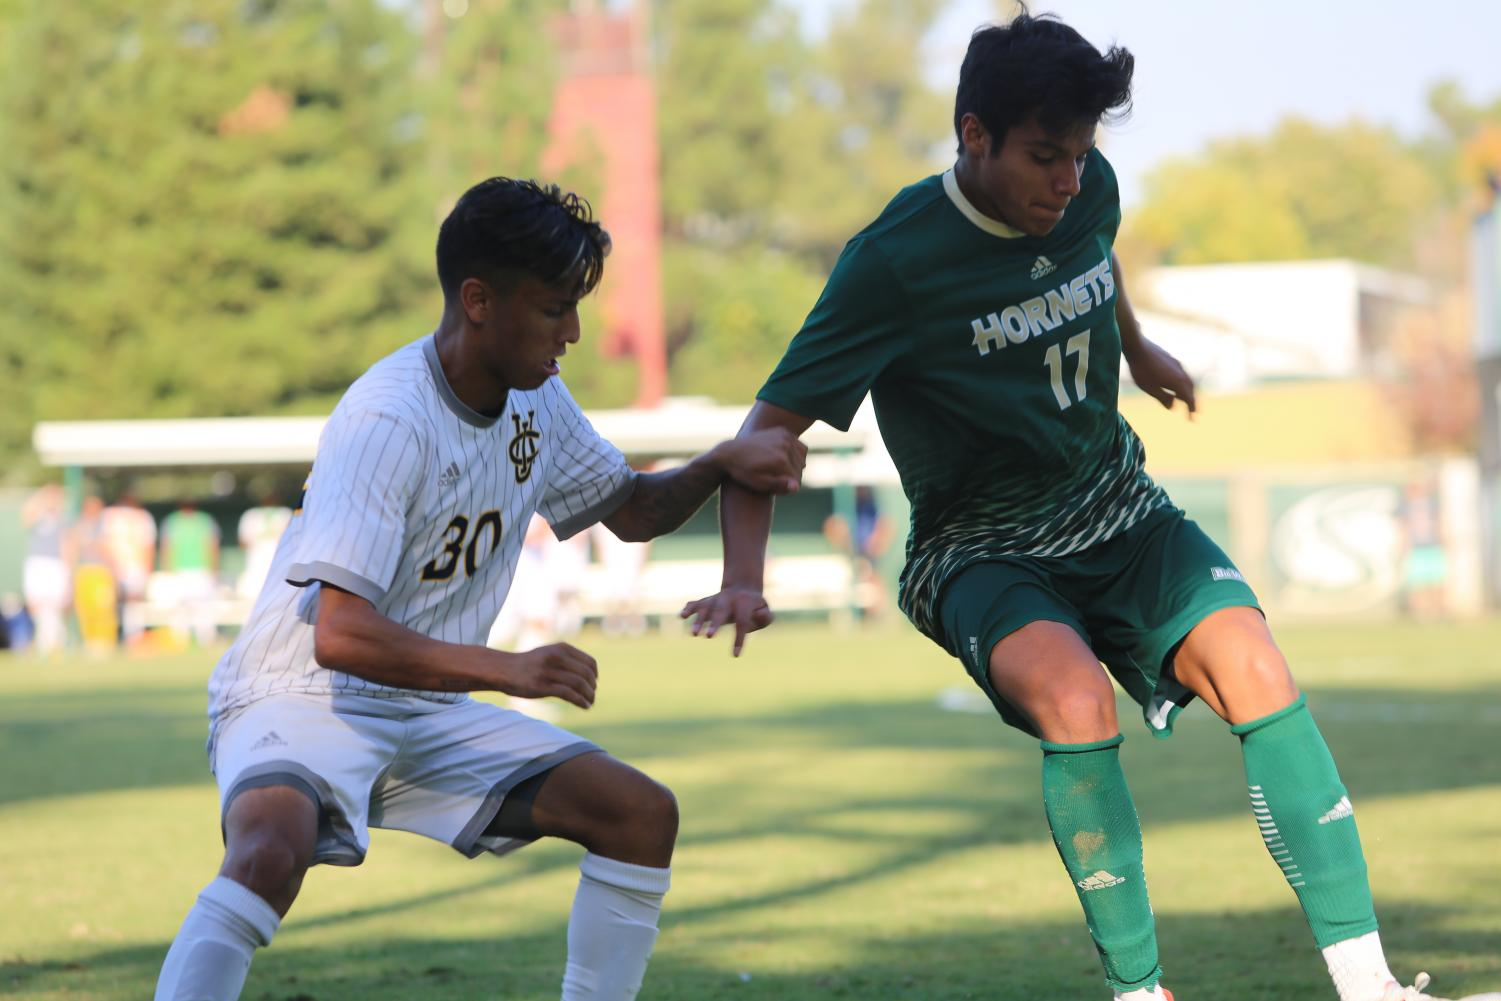 Sac State sophomore defender Alejandro Alacantaro battles for possession of the ball with UC Irvine freshman midfielder Roberto Molina Saturday Oct. 12 at Hornet Field. UC Irvine and Sac State played a 2-2 draw.